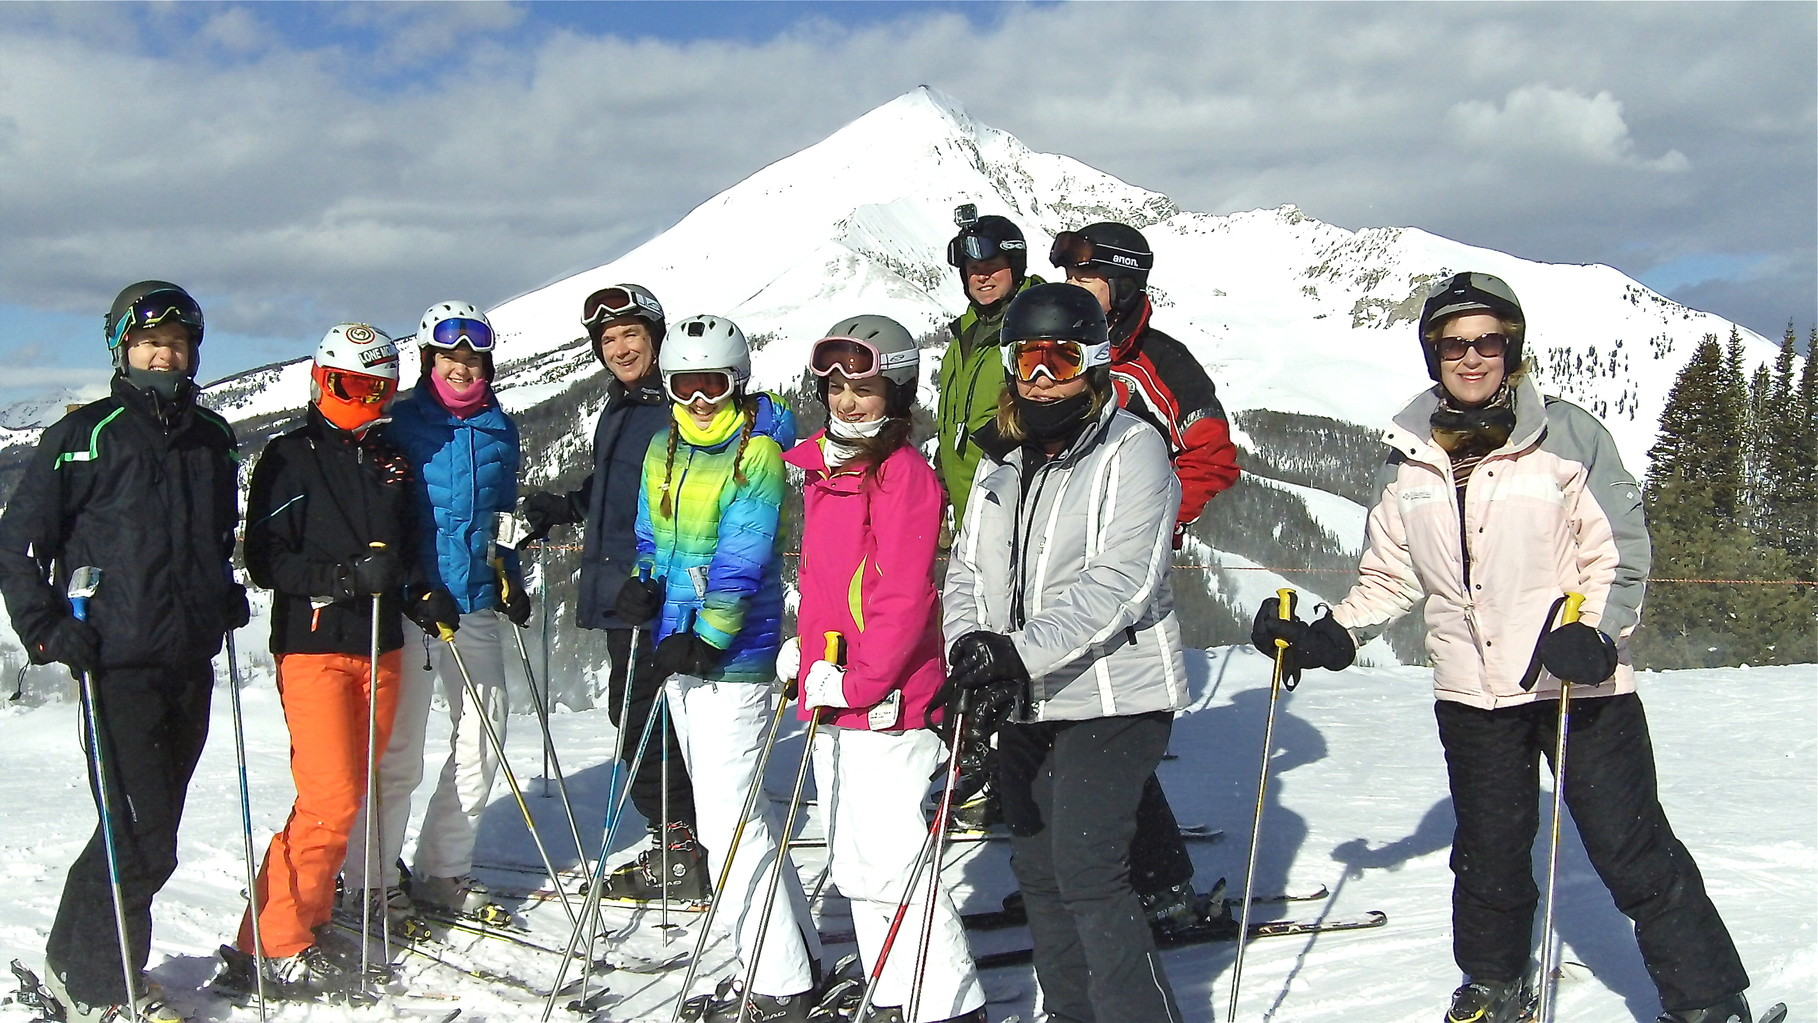 Jack, Kate, Ellie, John, Emma, Gabby, Stuart Jr., Celeste, Jack Donohue, & Lorraine, Lone Peak in background